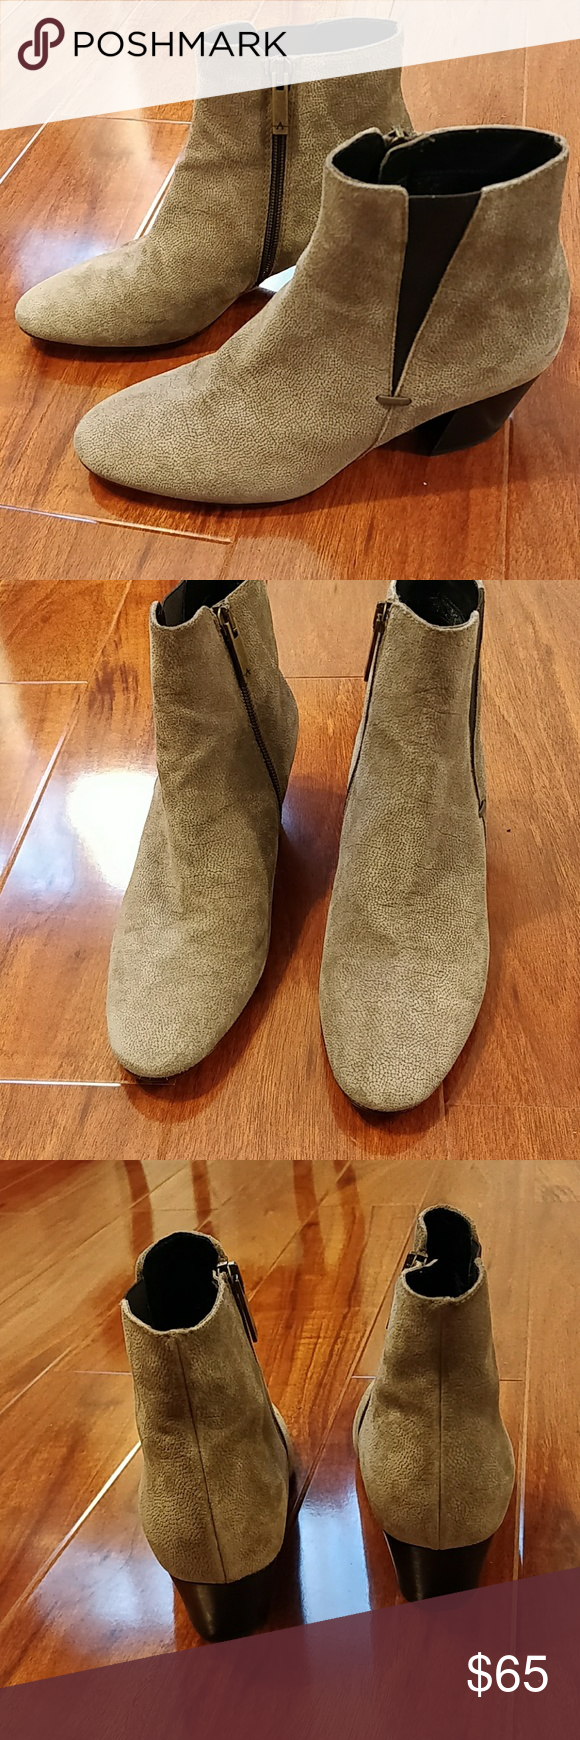 8bb79551f18 Aquatalia Faylynn weatherproof suede taupe booties Purchased from Nordstrom  rack